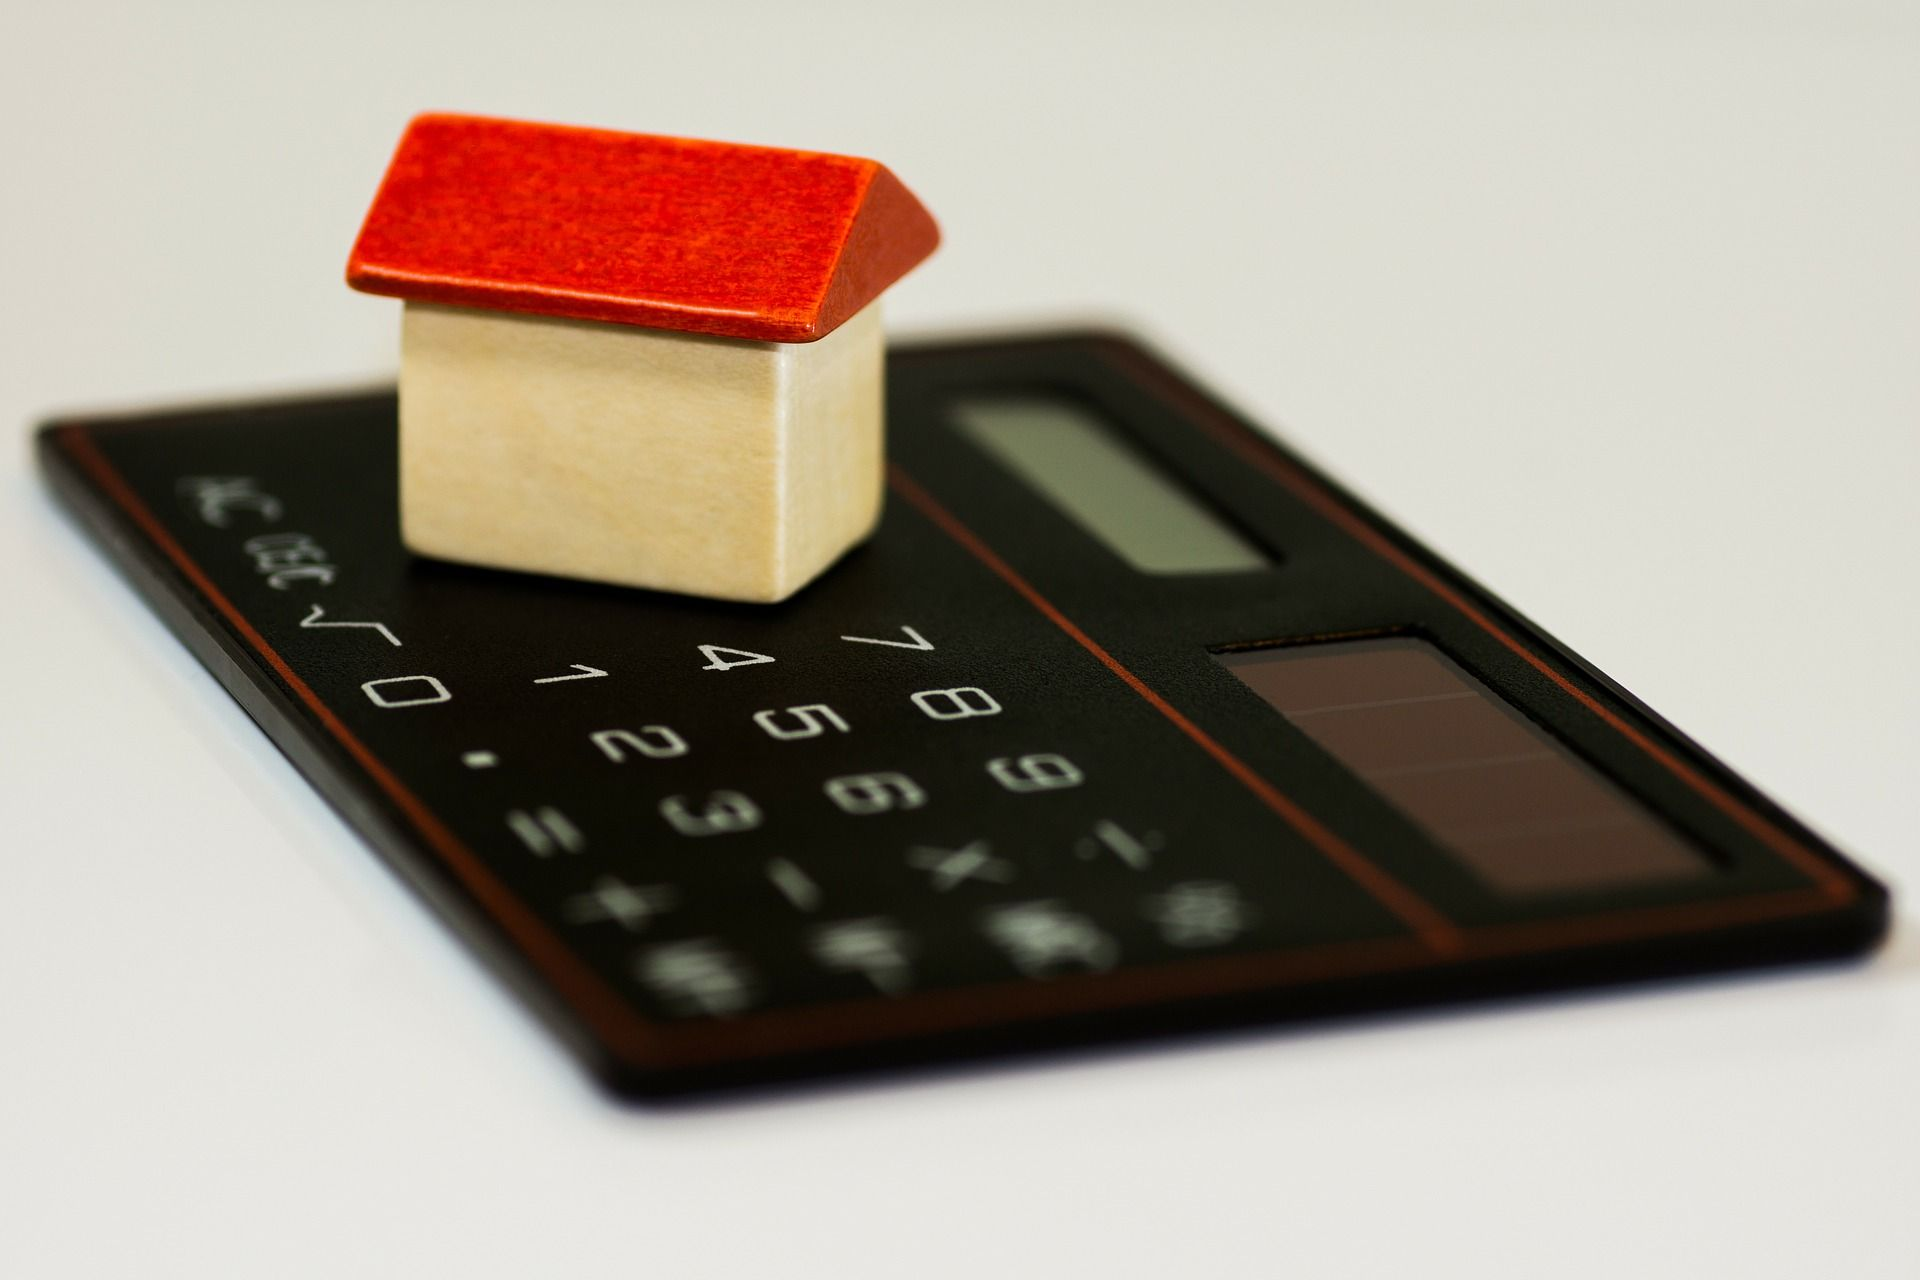 Learning how to get a mortgage is not so difficult. Here are some simple ways to save as much money as possible.